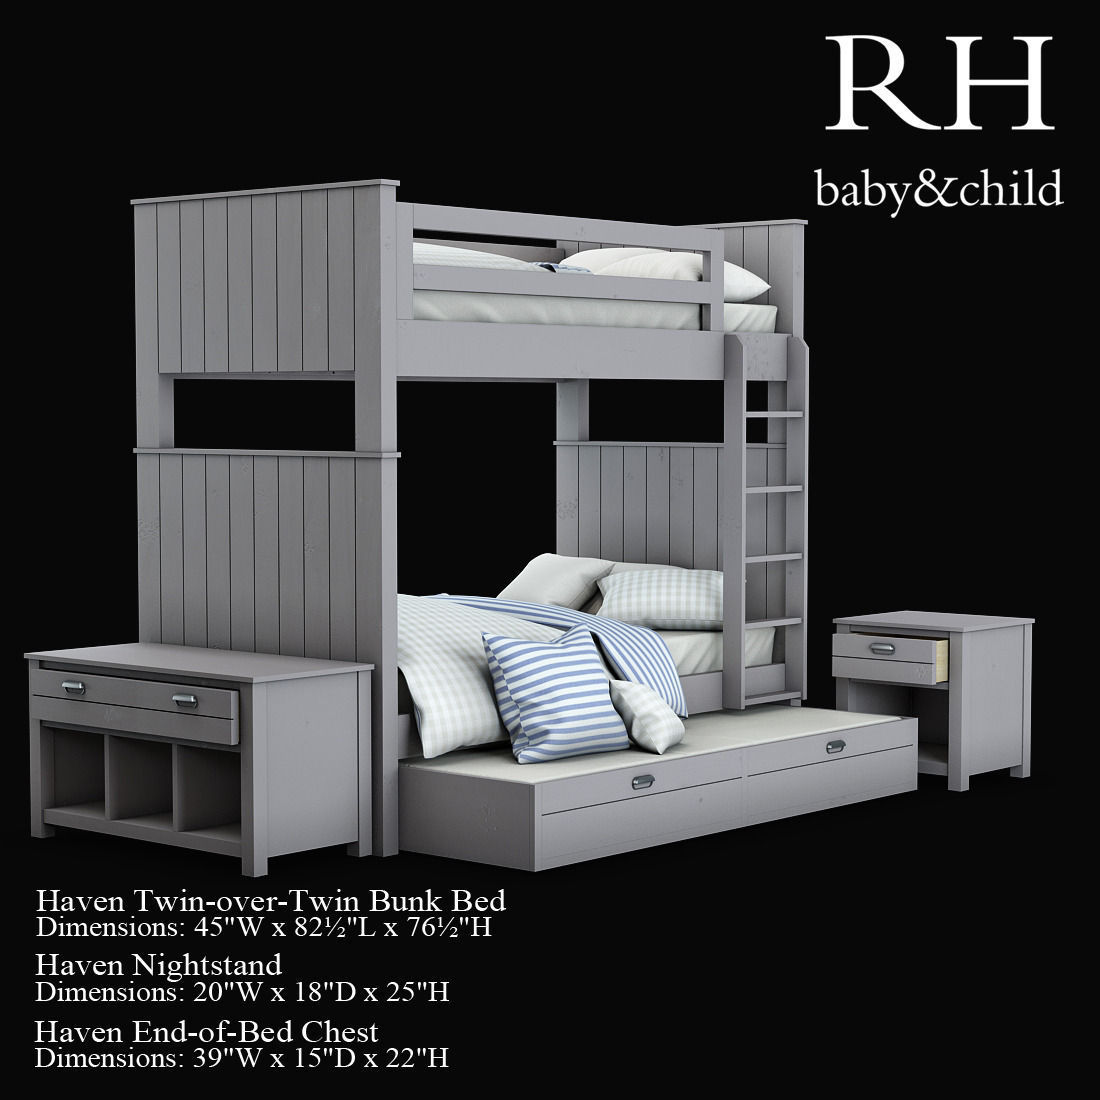 haven twin-over-twin bunk bed 3d model max fbx